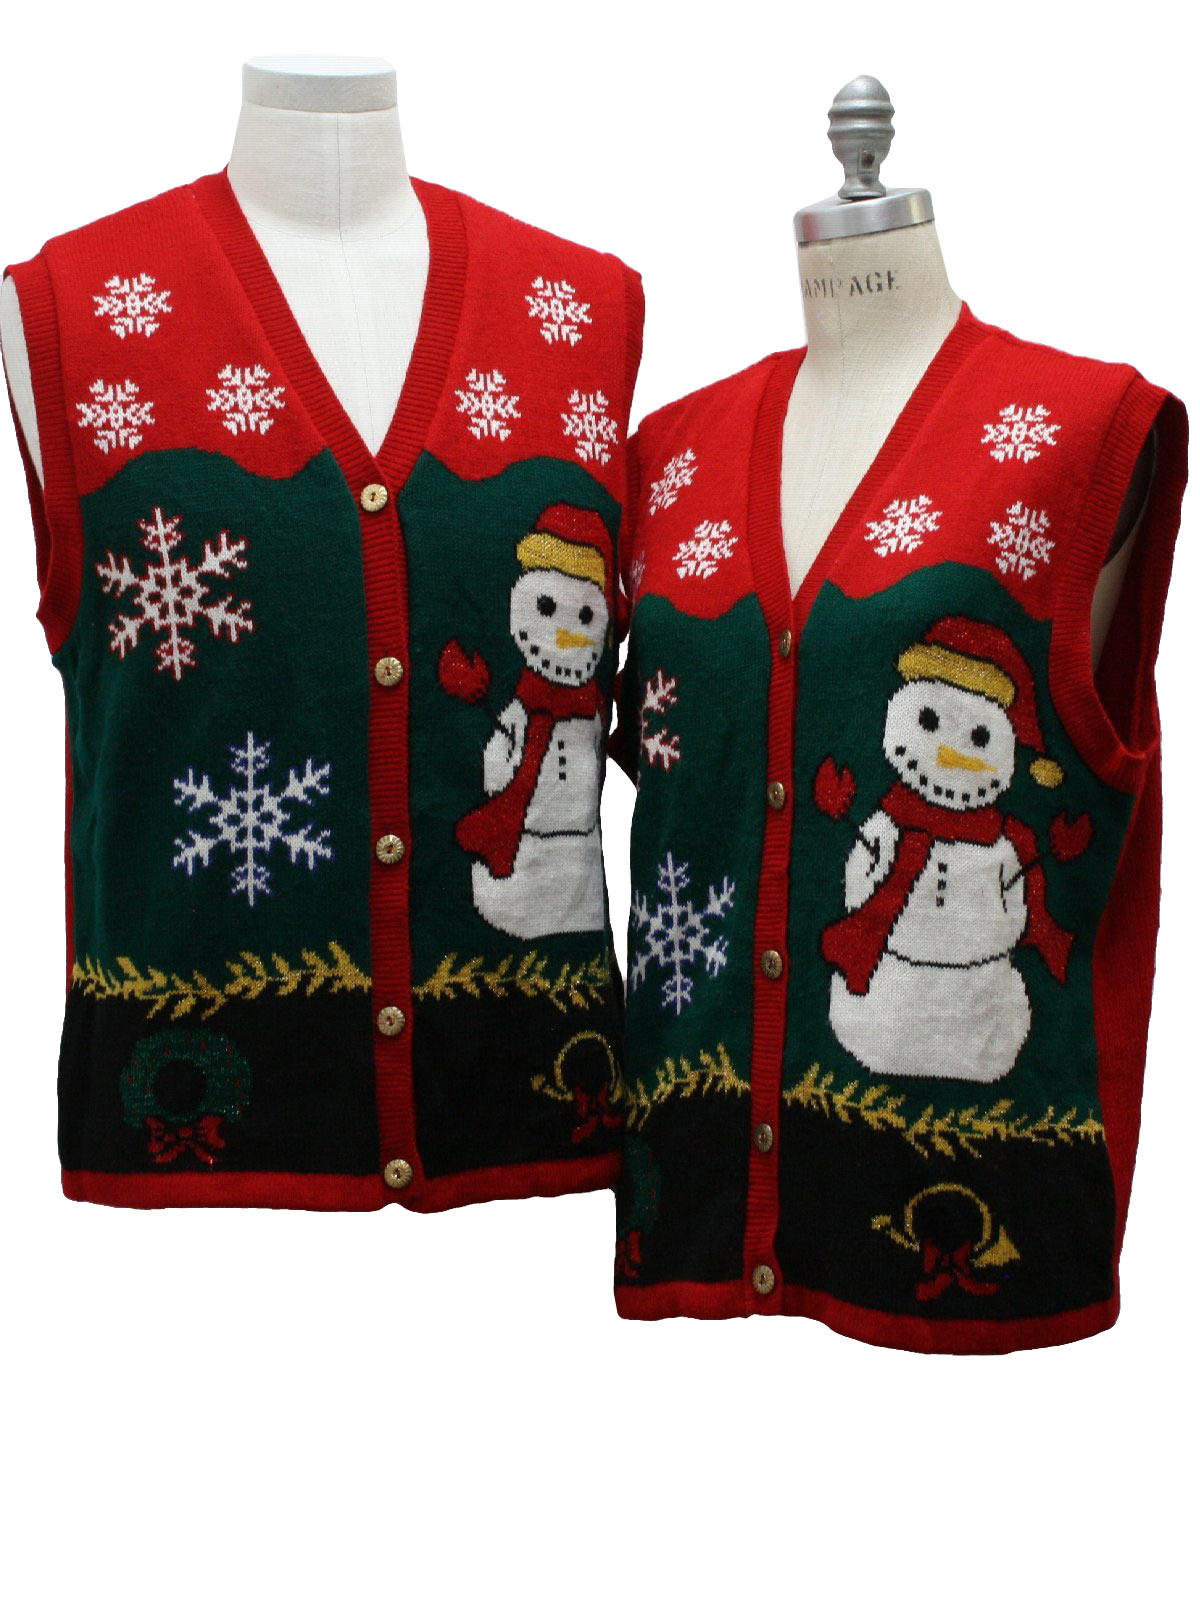 Style Studio Unisex Matching Set of Two Ugly Christmas Sweater Vests